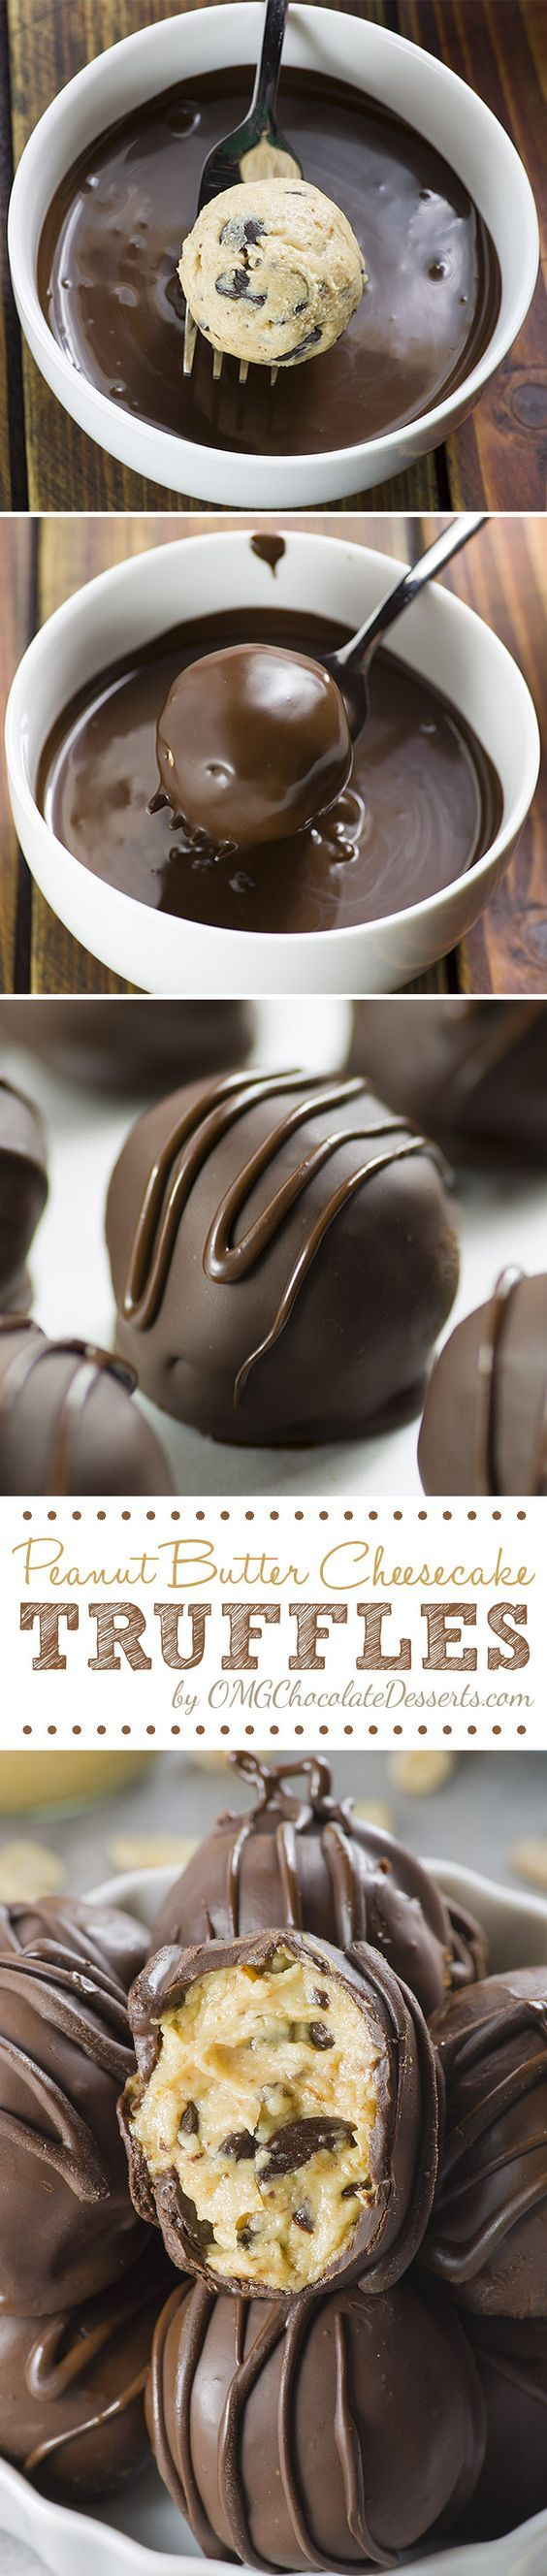 Peanut Butter Cheesecake Truffles - delicious bites of smooth peanut butter cheesecake loaded with chocolate chips covered with crunchy chocolate shell.